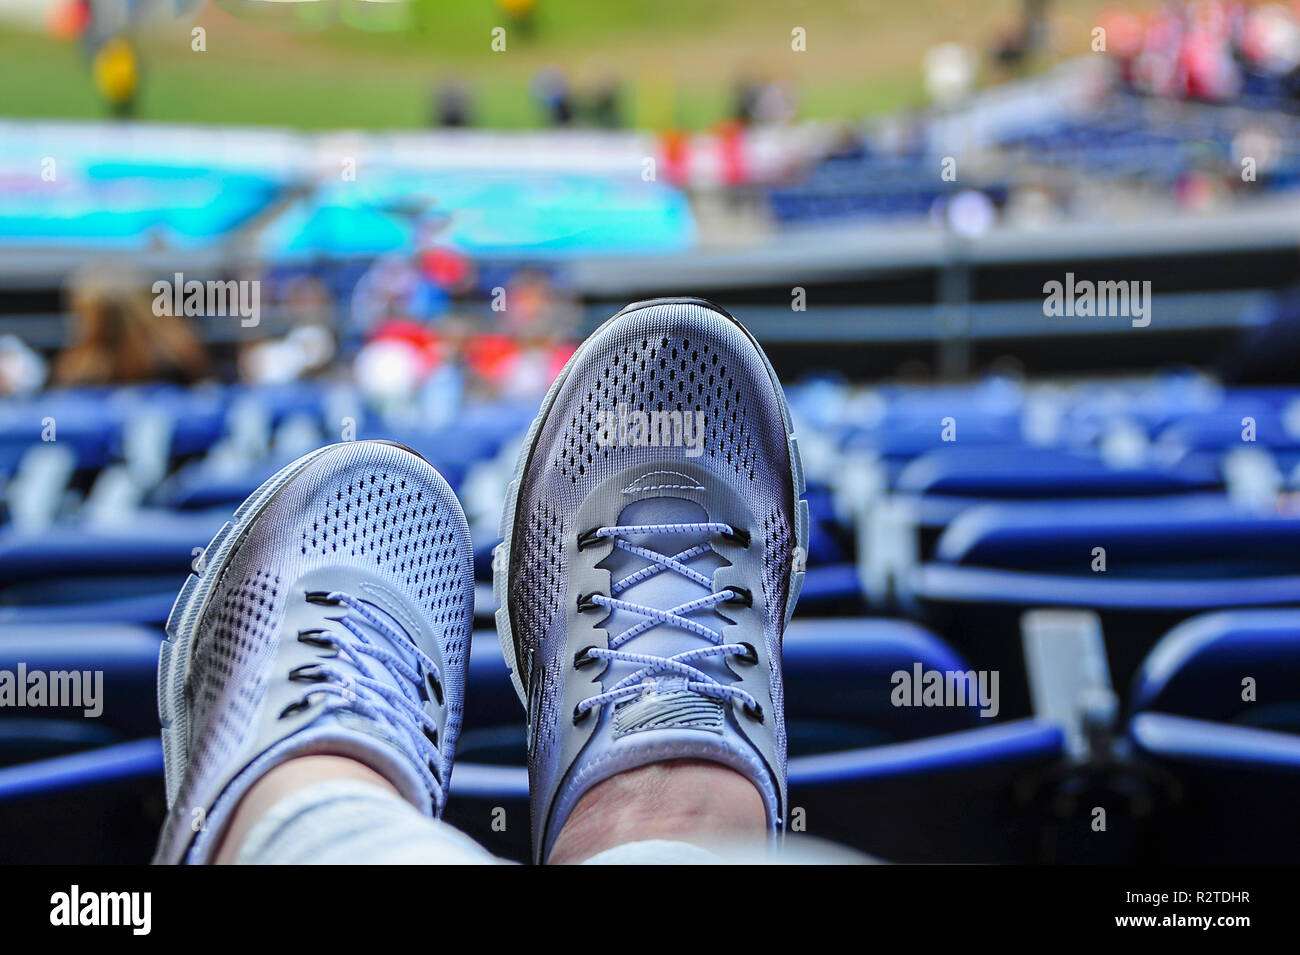 Close up top view of pair of ladies classic white sneakers with grey trim. Modern lifestyle footwear for men and women, with sporting venue background - Stock Image